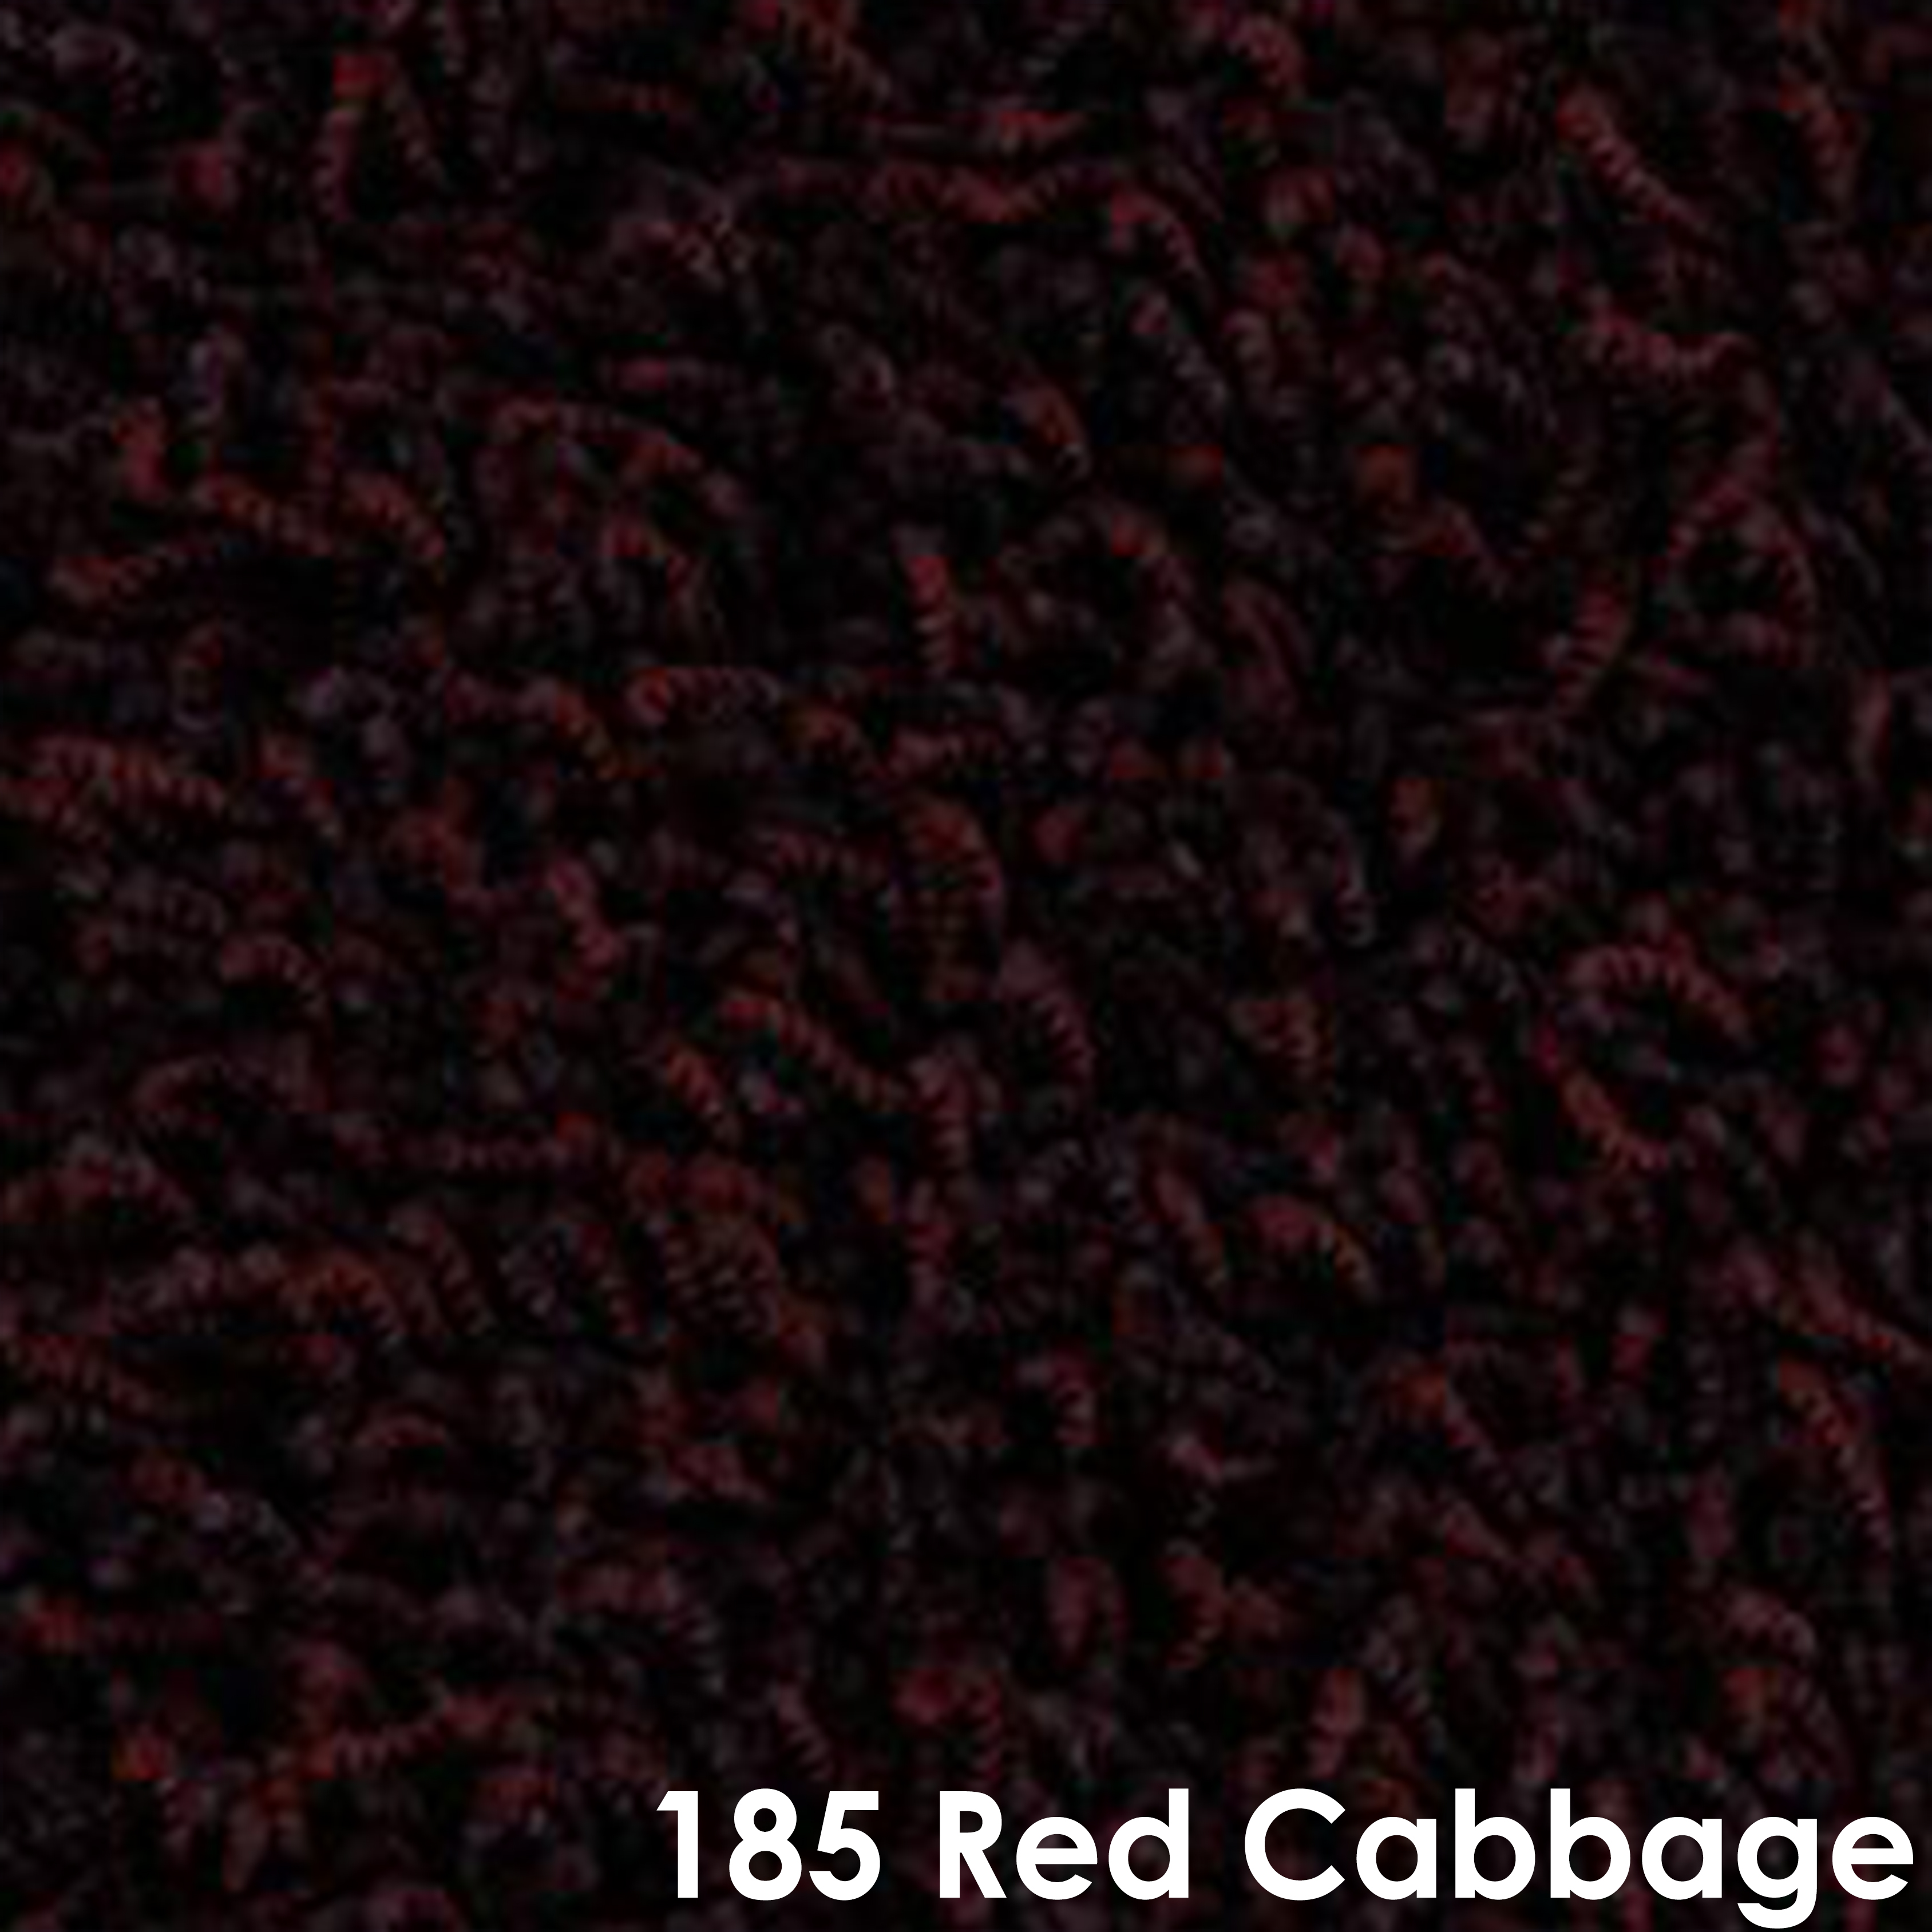 185 Red Cabbage